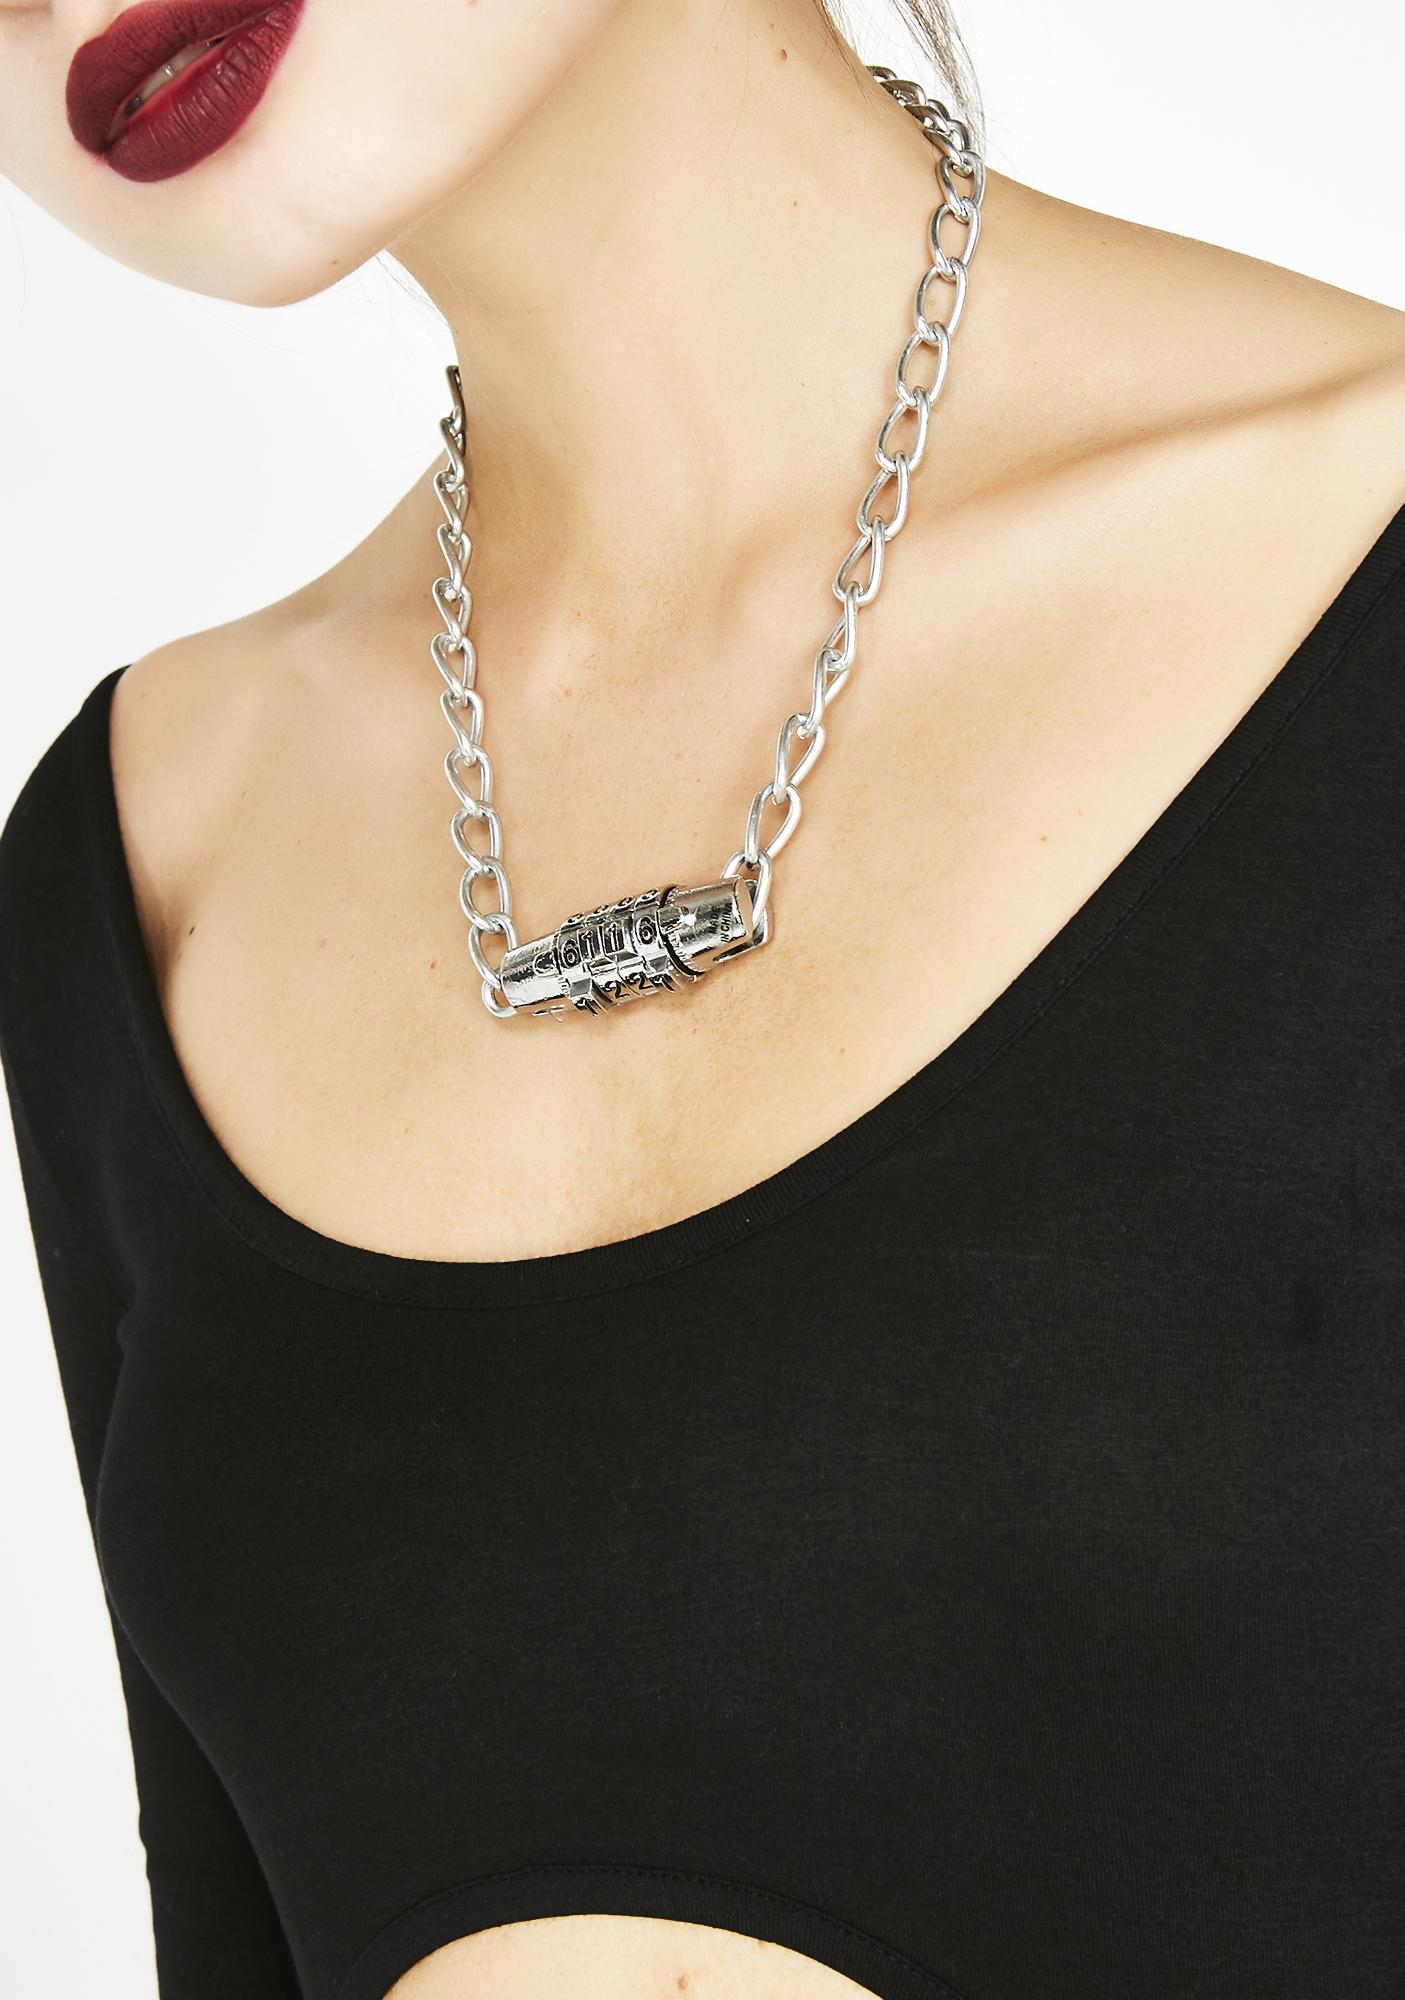 What's Your Code Lock Necklace